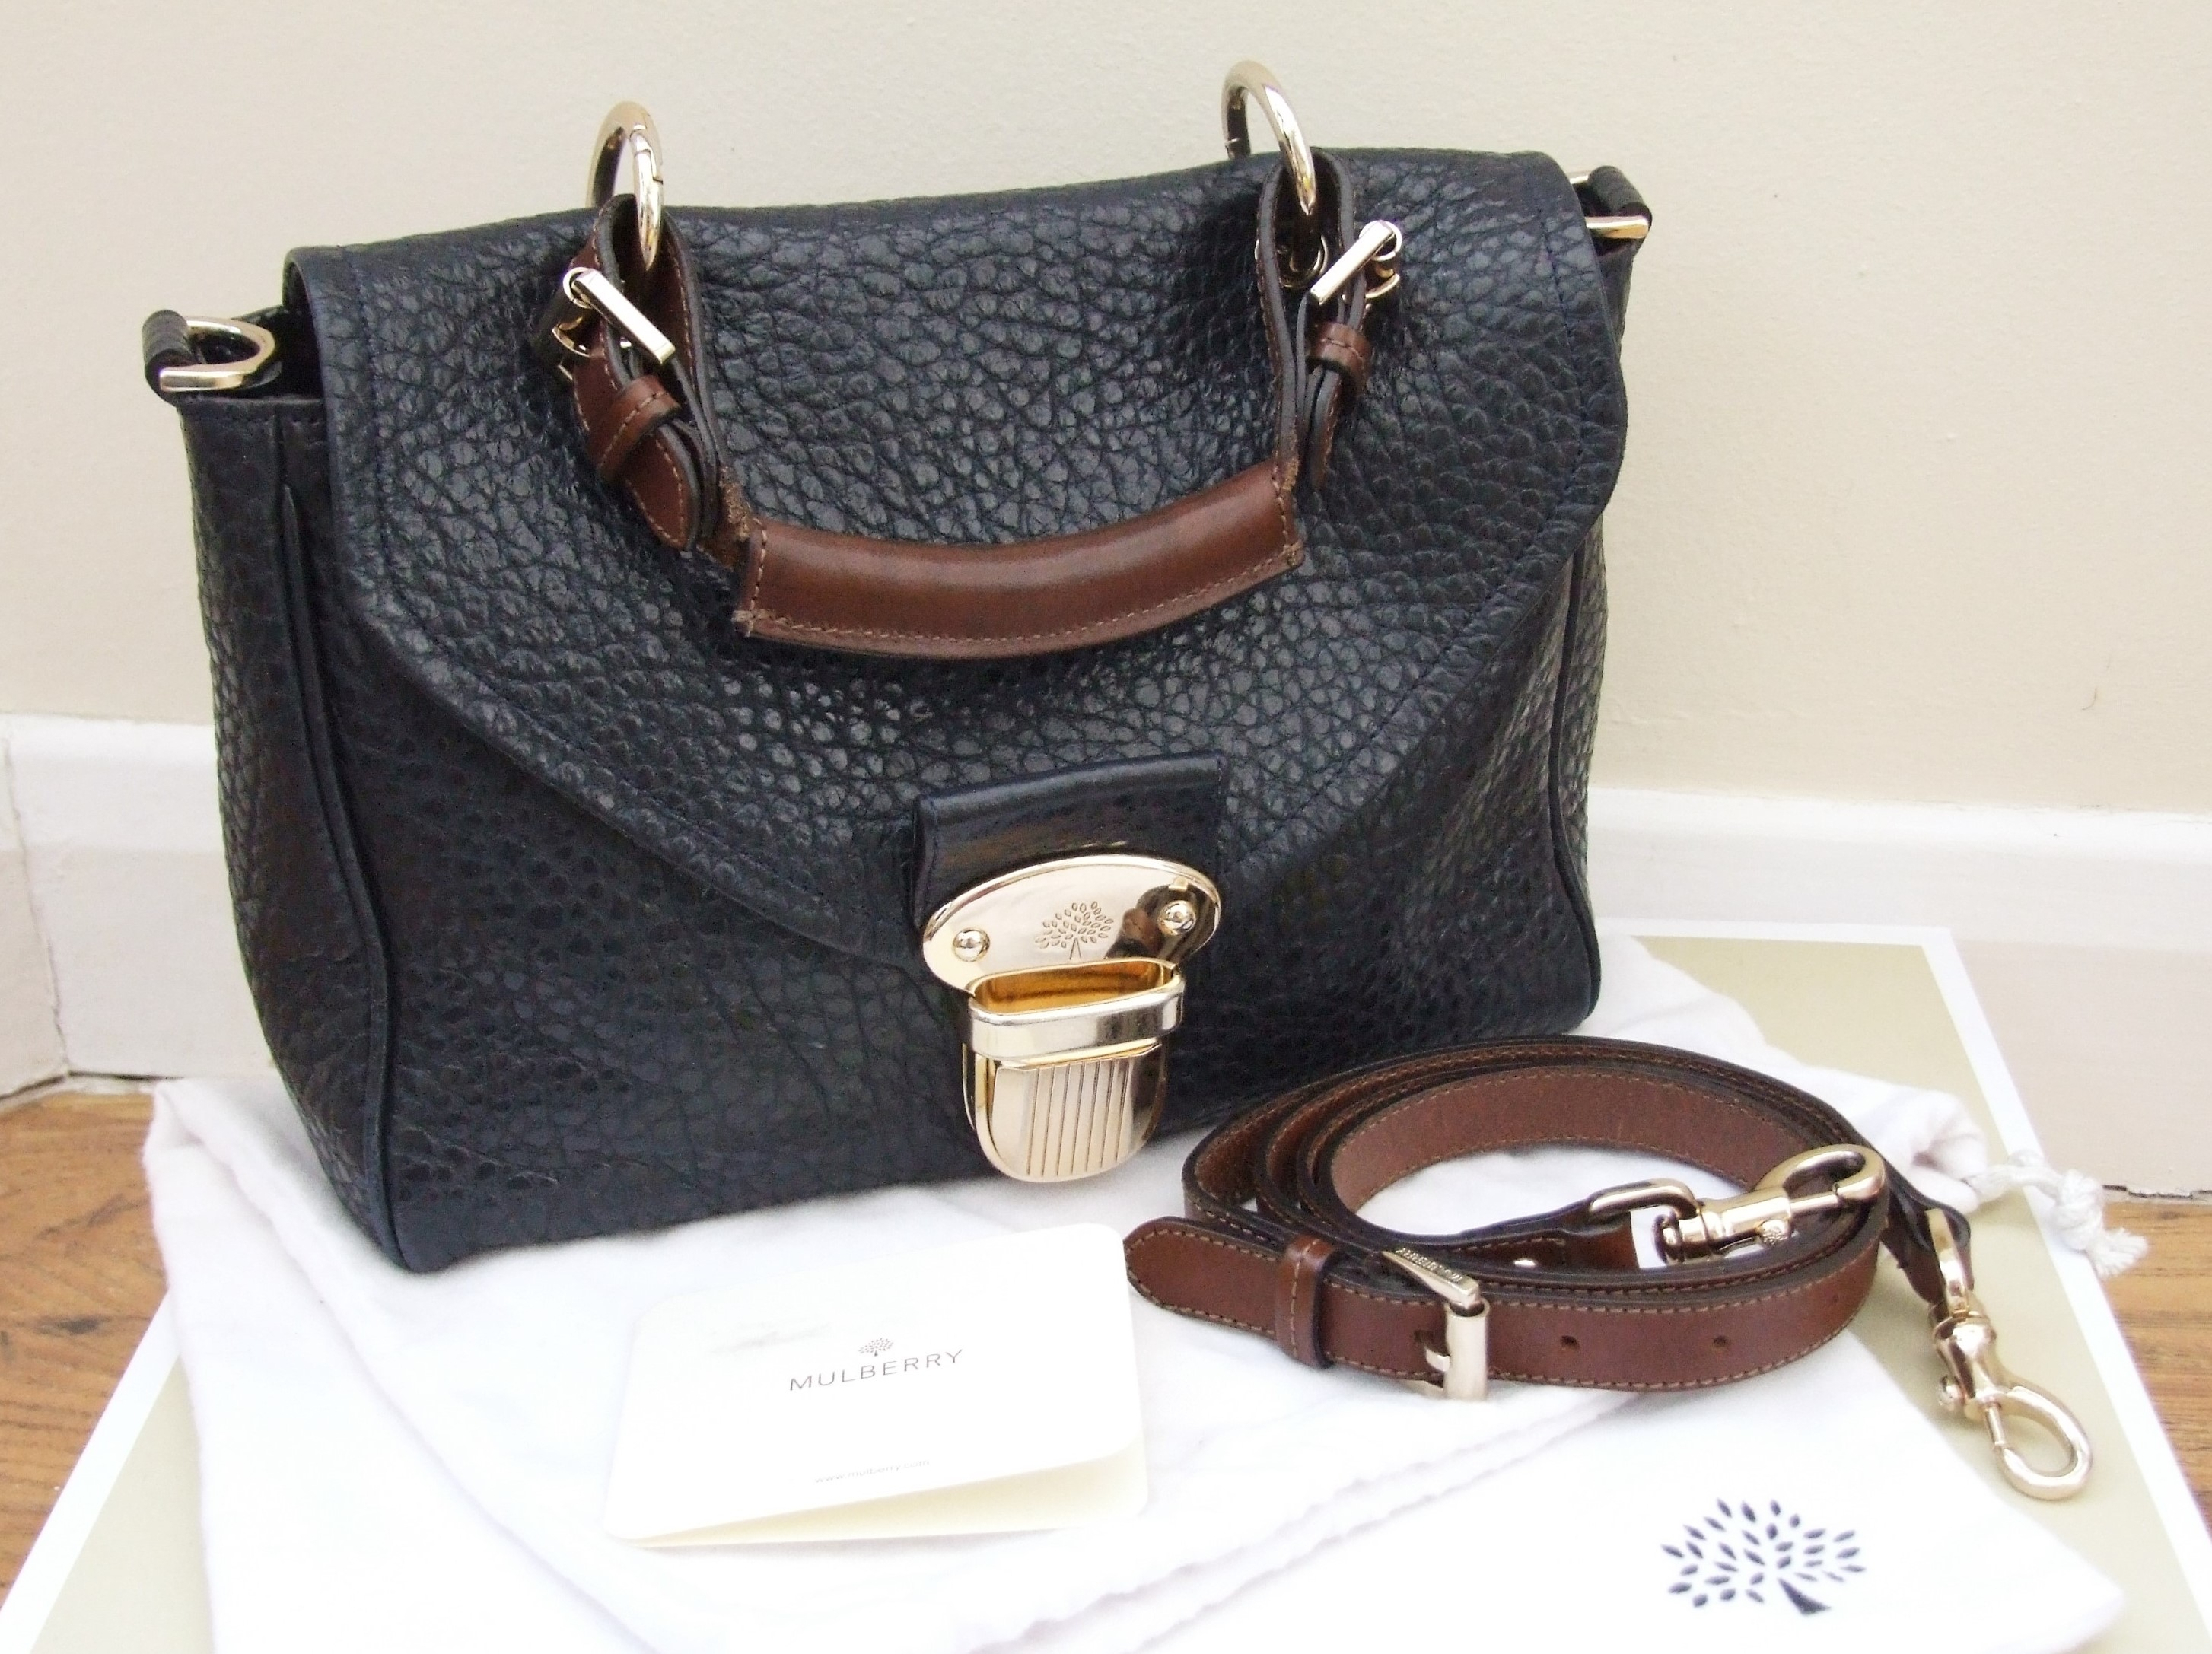 ... sale mulberry polly push lock bag hewi london b7ade cee88 d60f374499